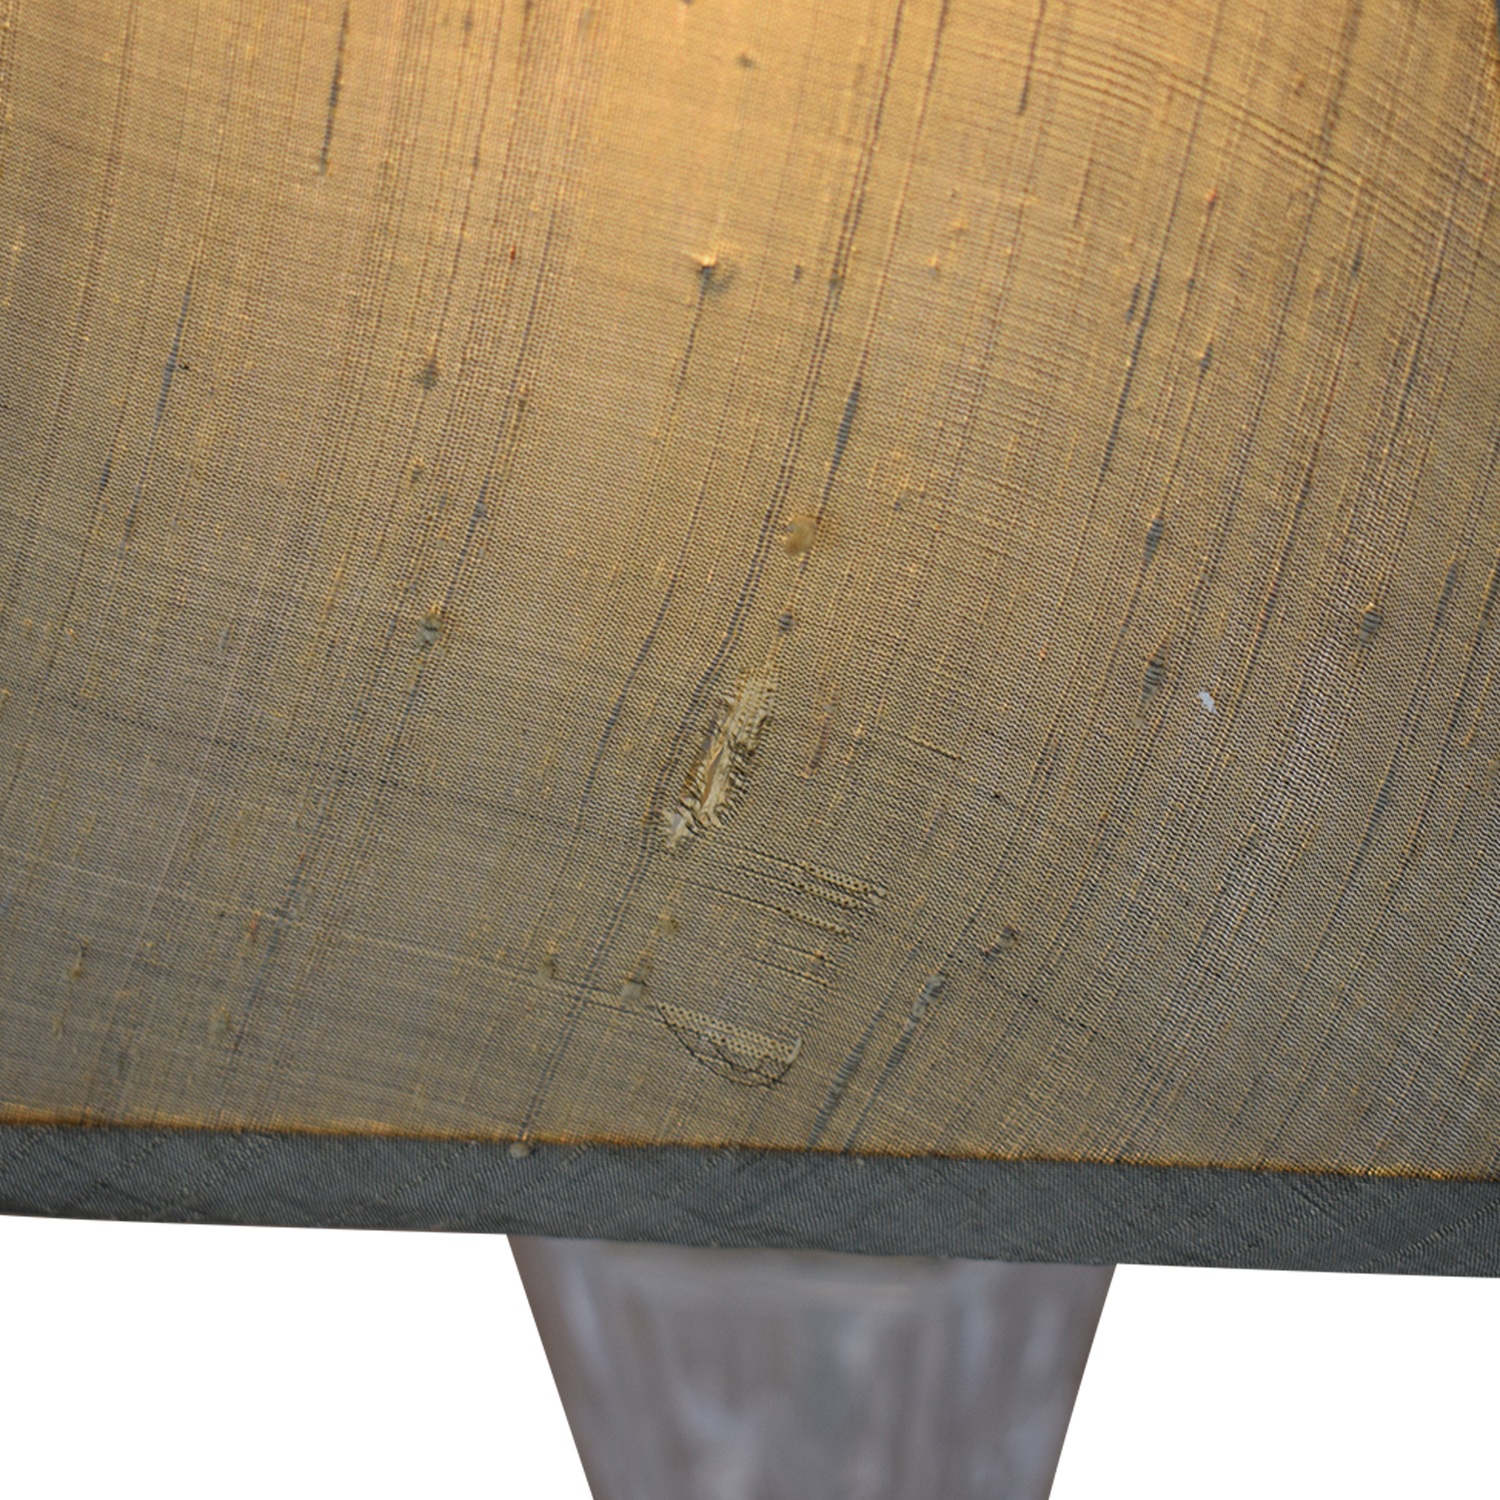 Distressed and Glass Accent Table Lamps for sale